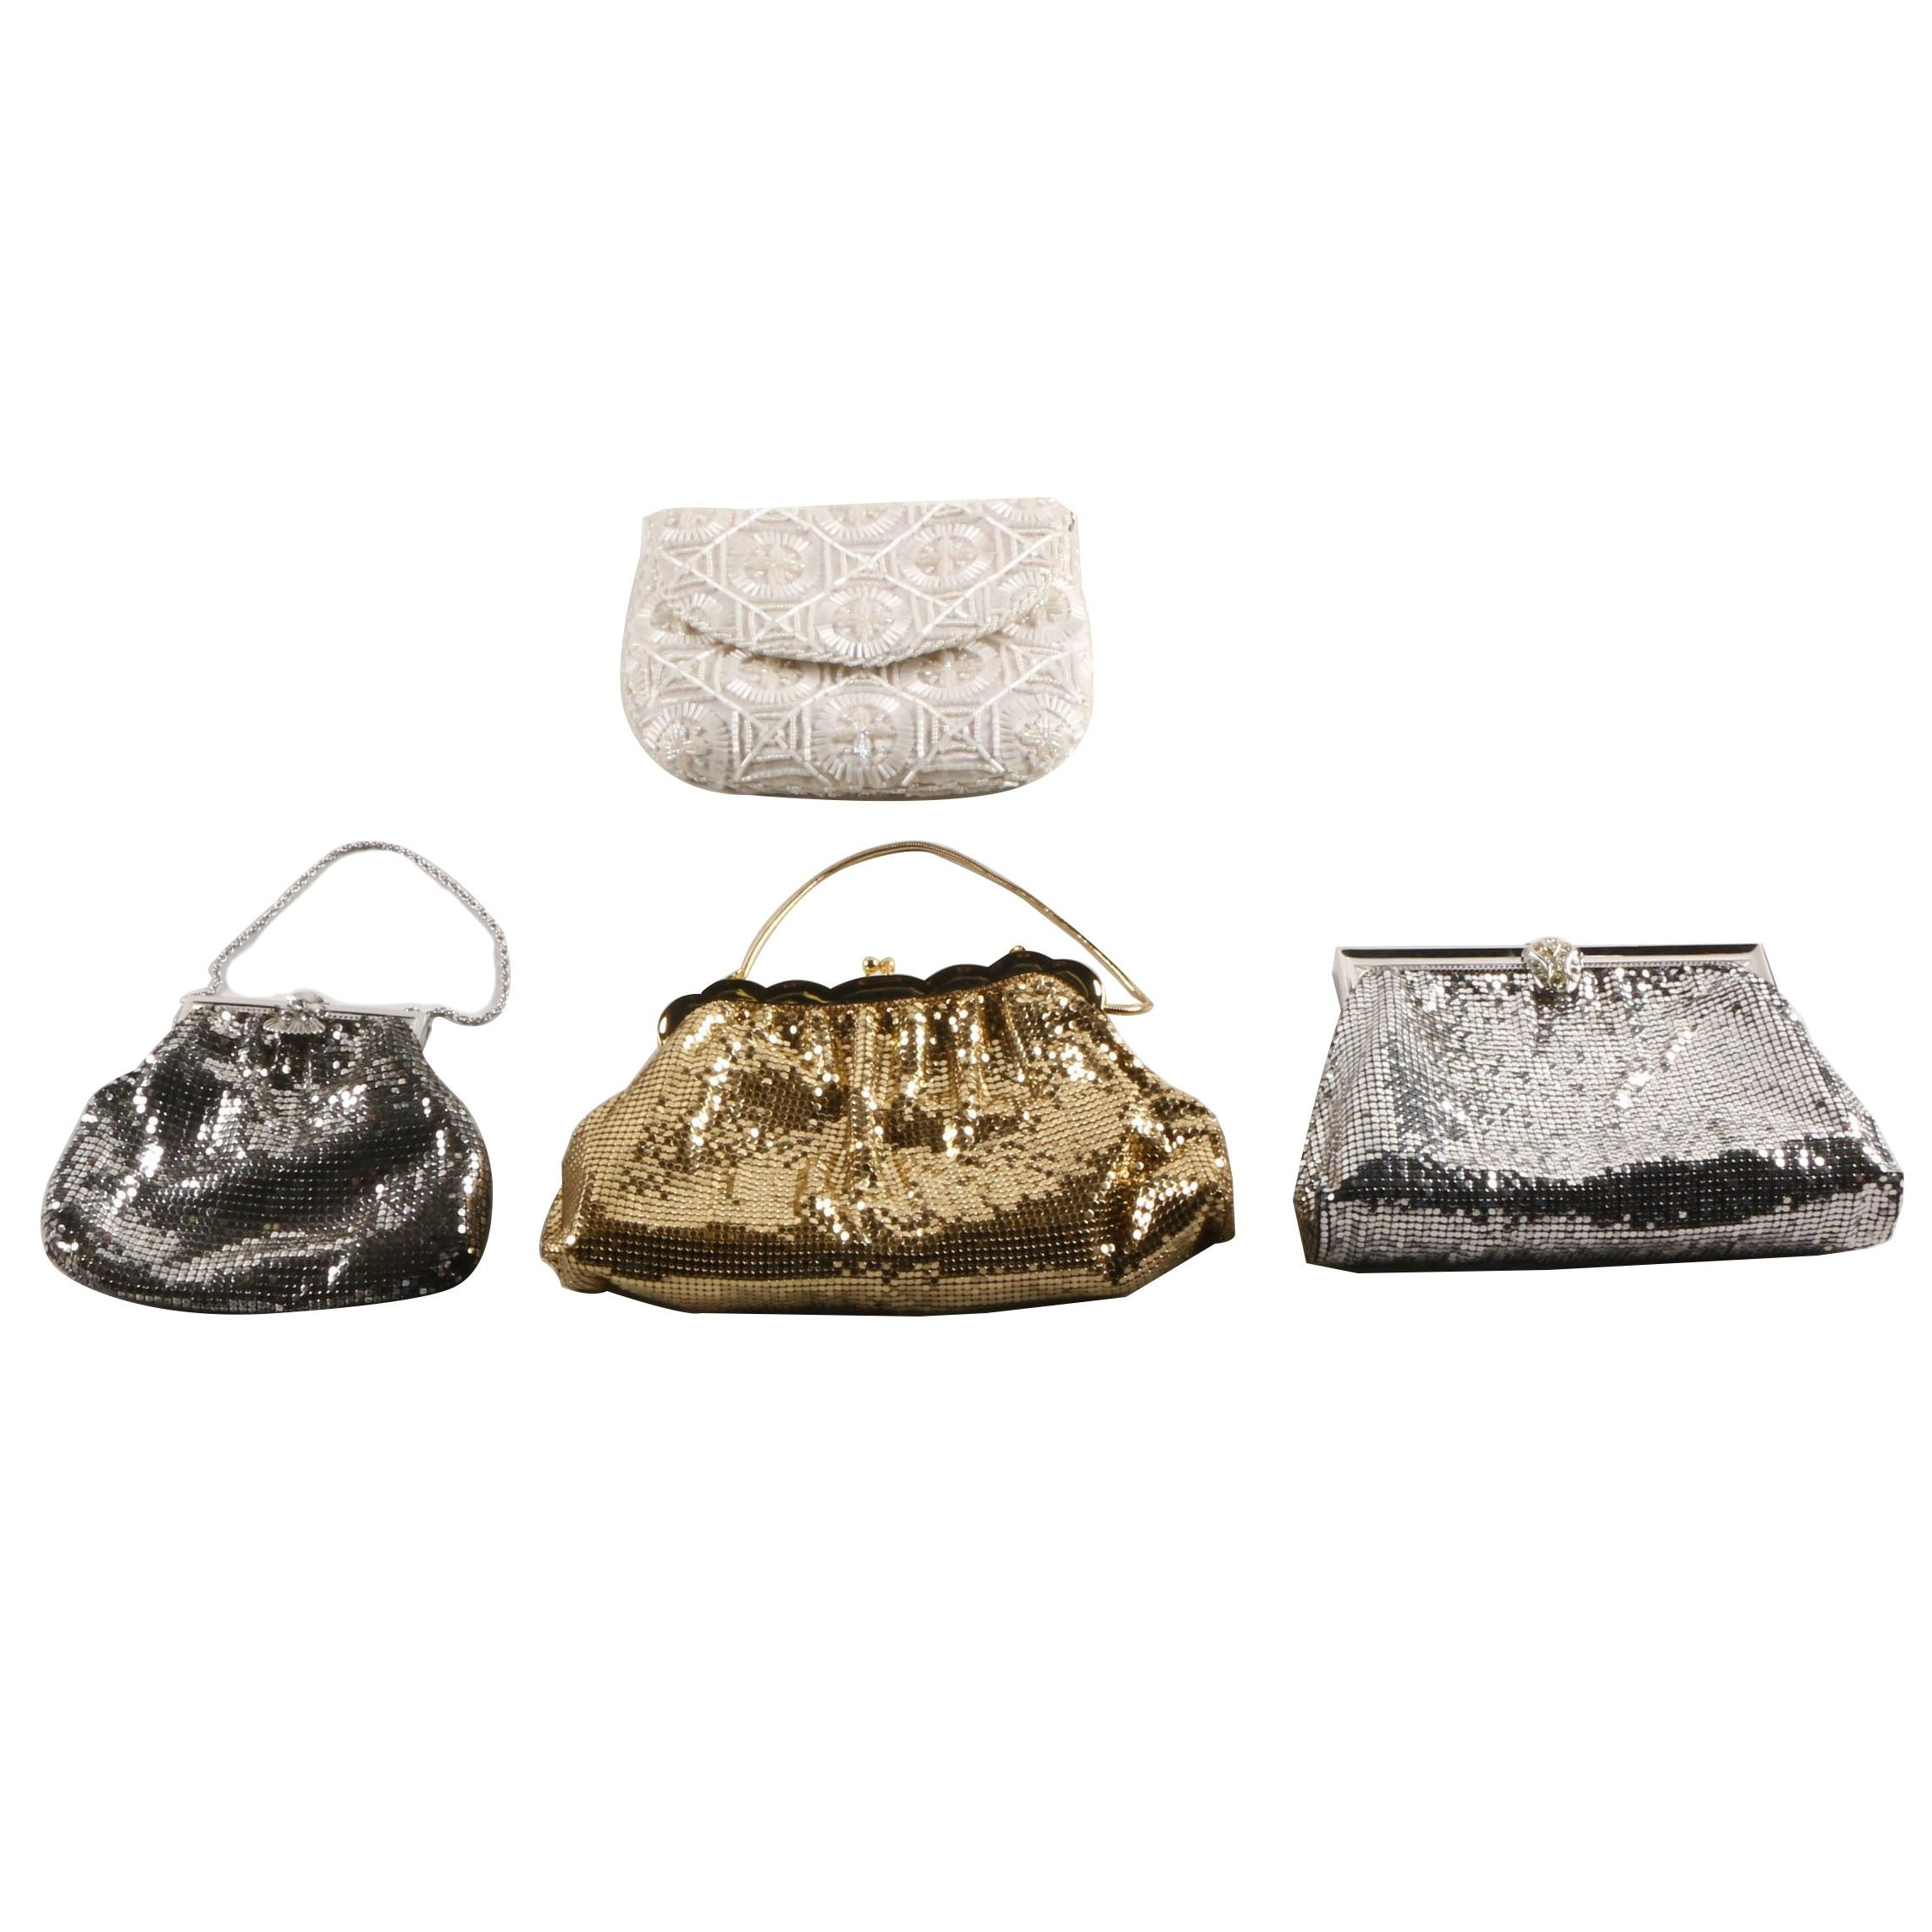 Beaded and Mesh Clutches Including Whiting & Davis